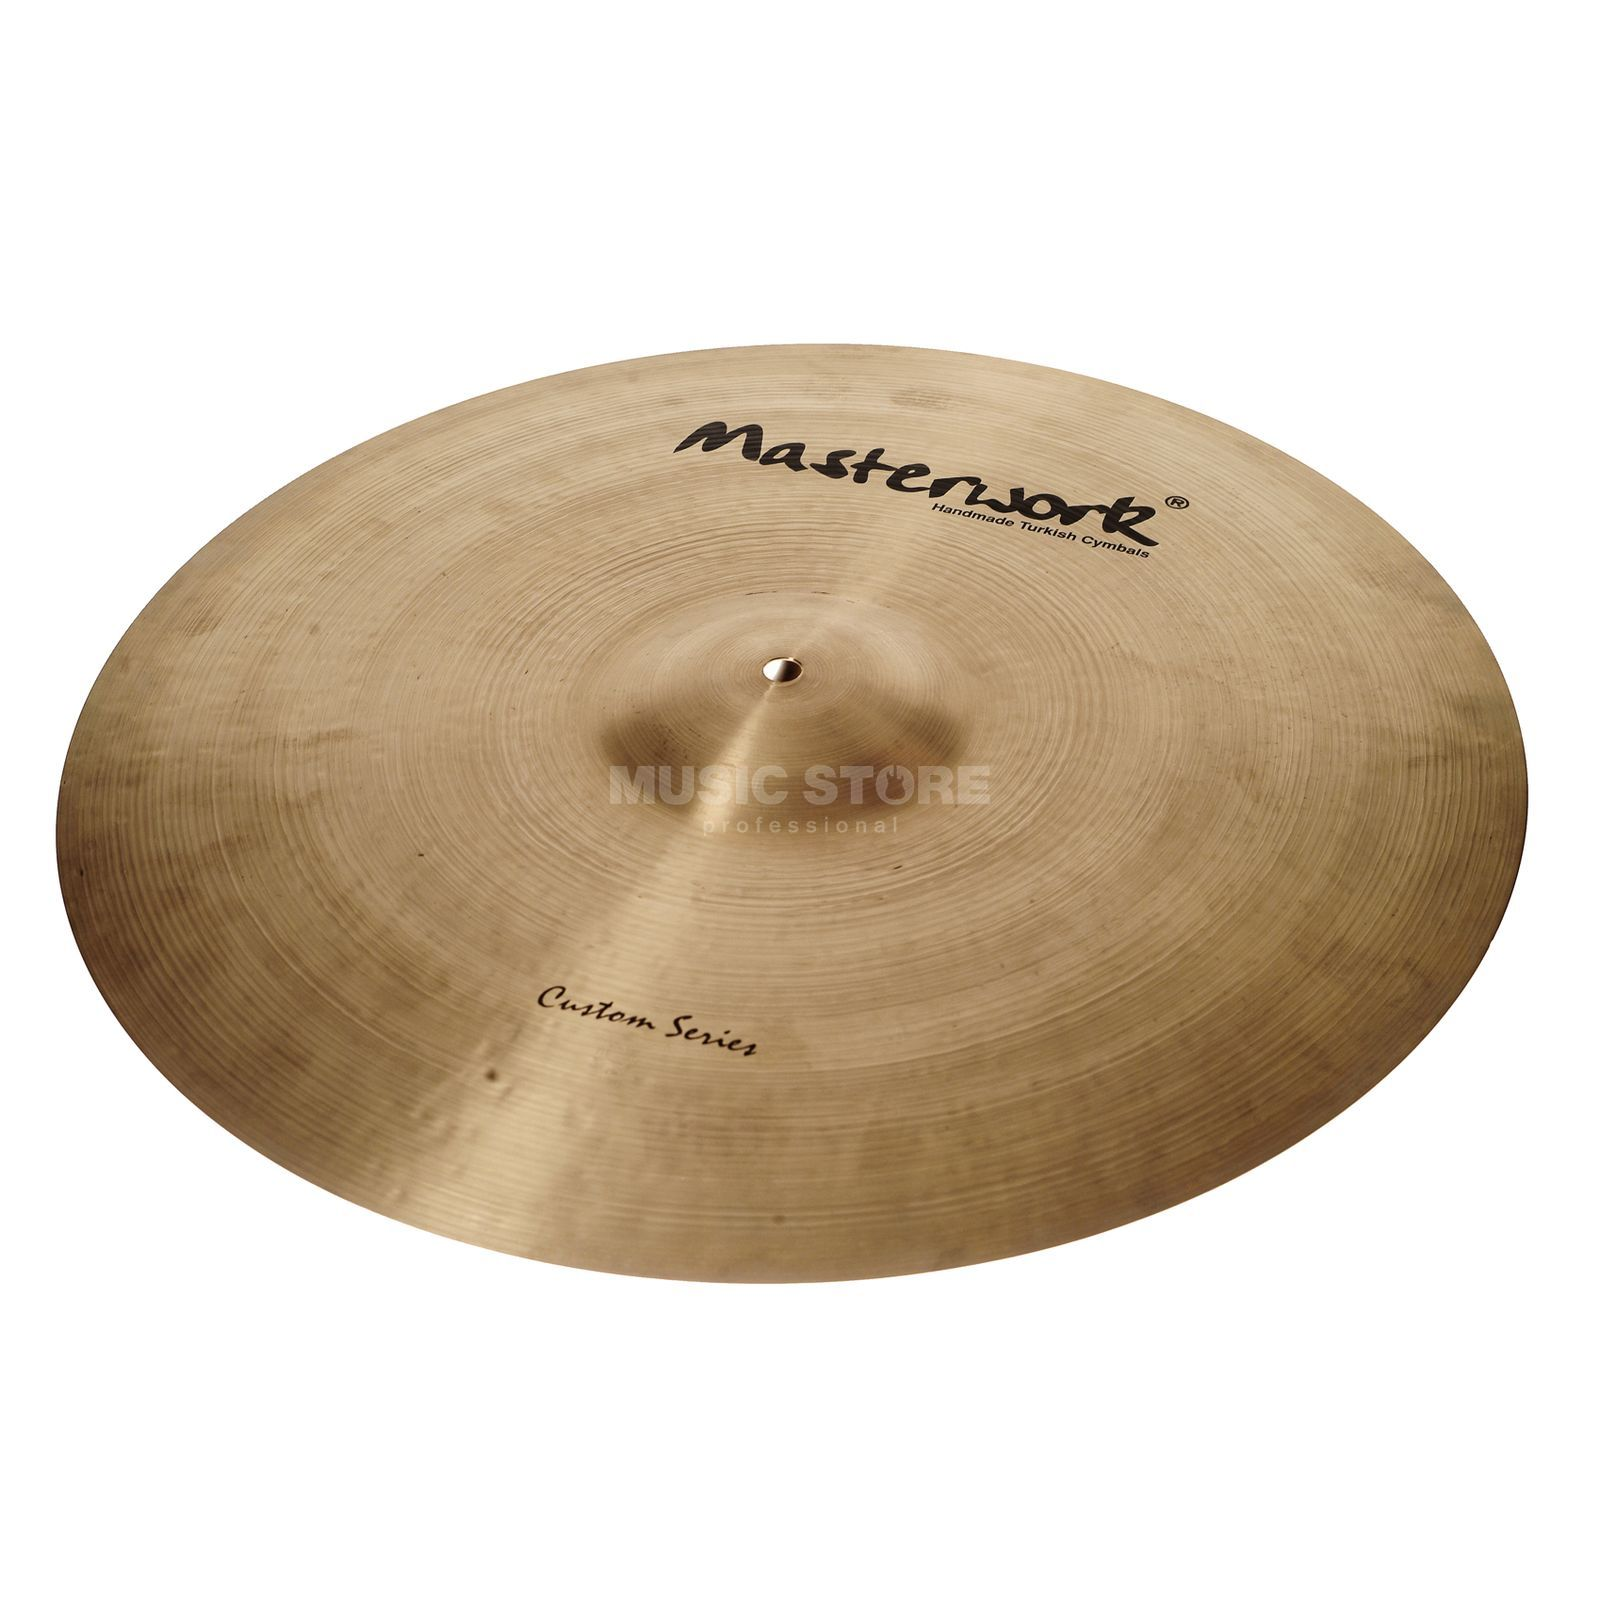 "Masterwork Custom Extra Thin Ride 21"" Product Image"